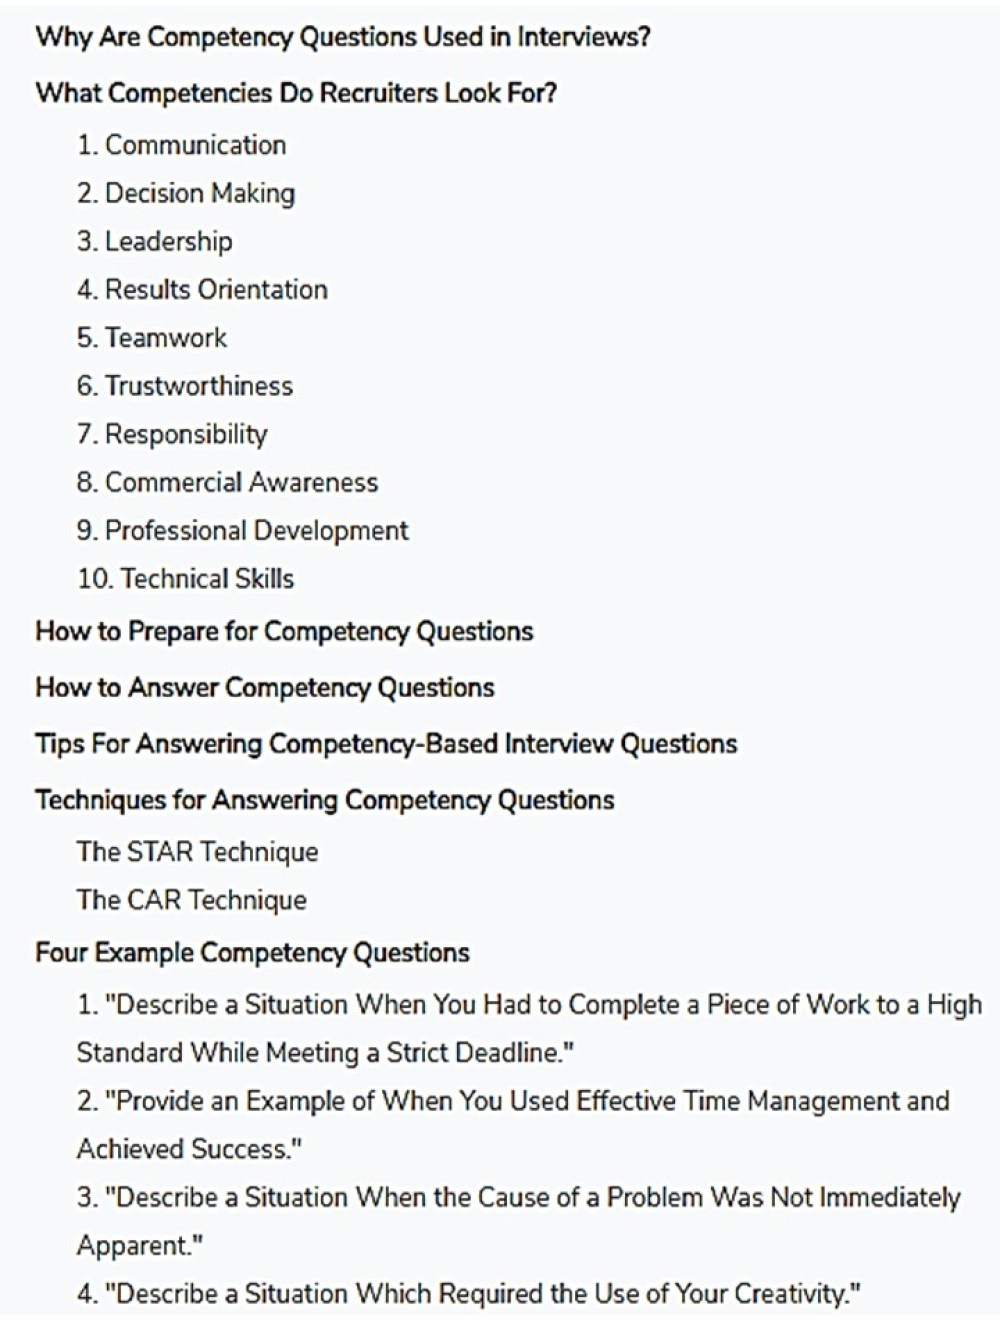 How to Answer Competency-Based Interview Questions